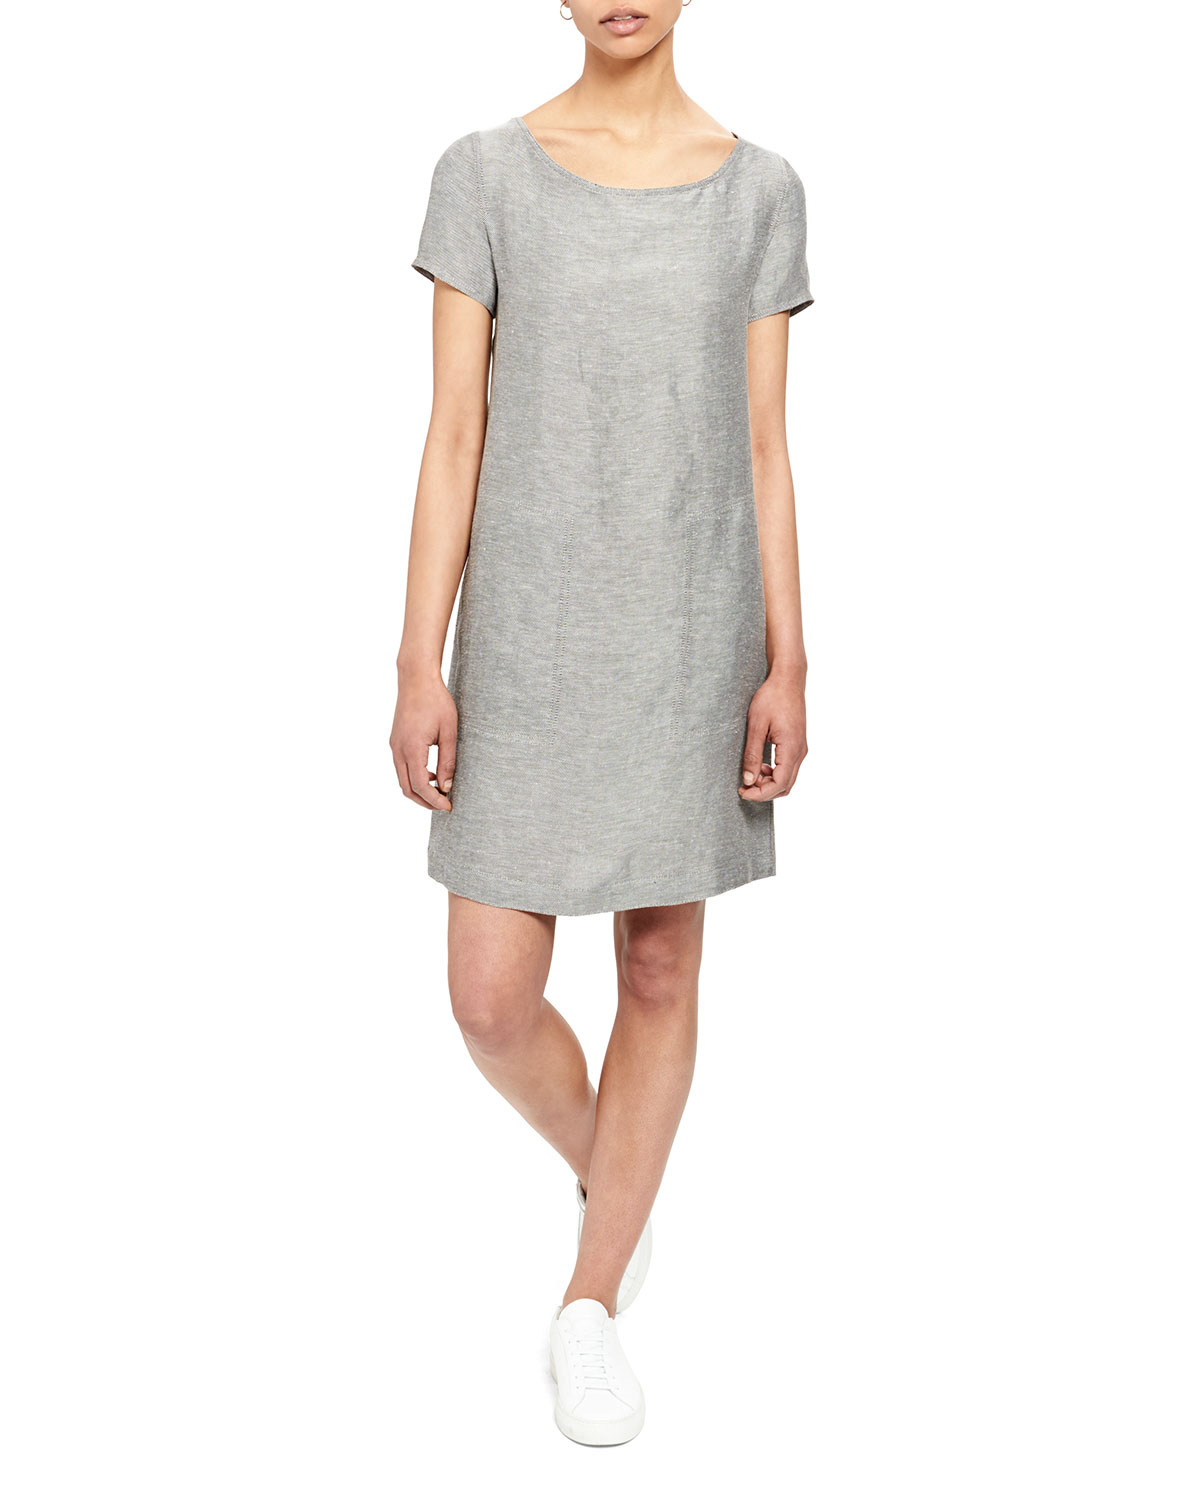 c9e7bc64099 Theory Structured Linen Shift Tee Dress In Black/White | ModeSens